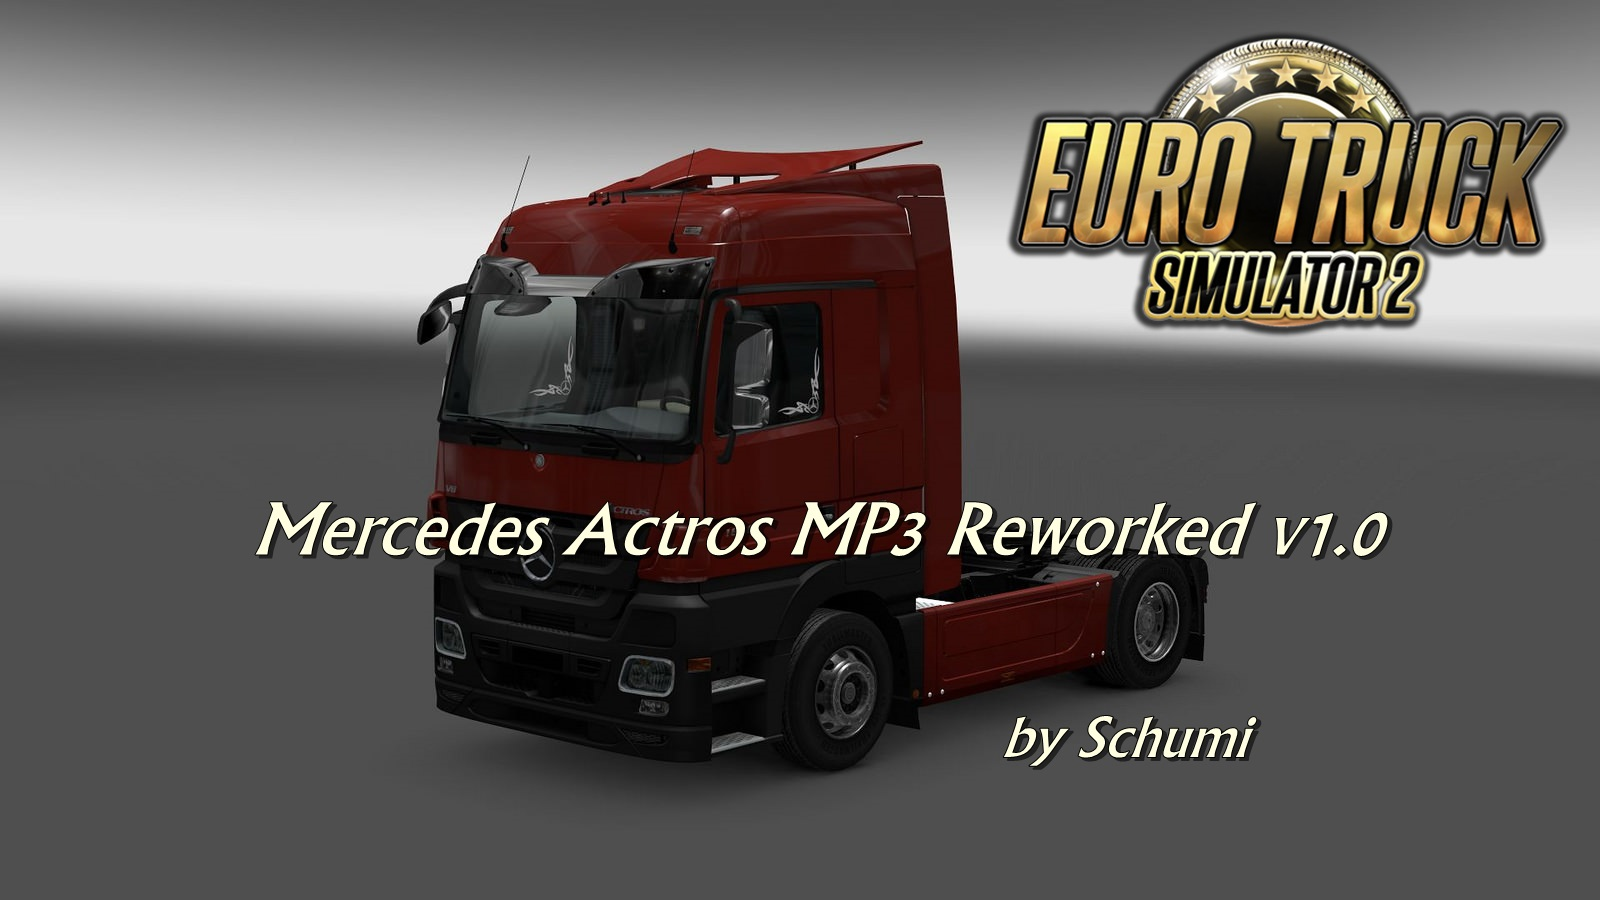 Mercedes Actros MP3 Reworked v1.0